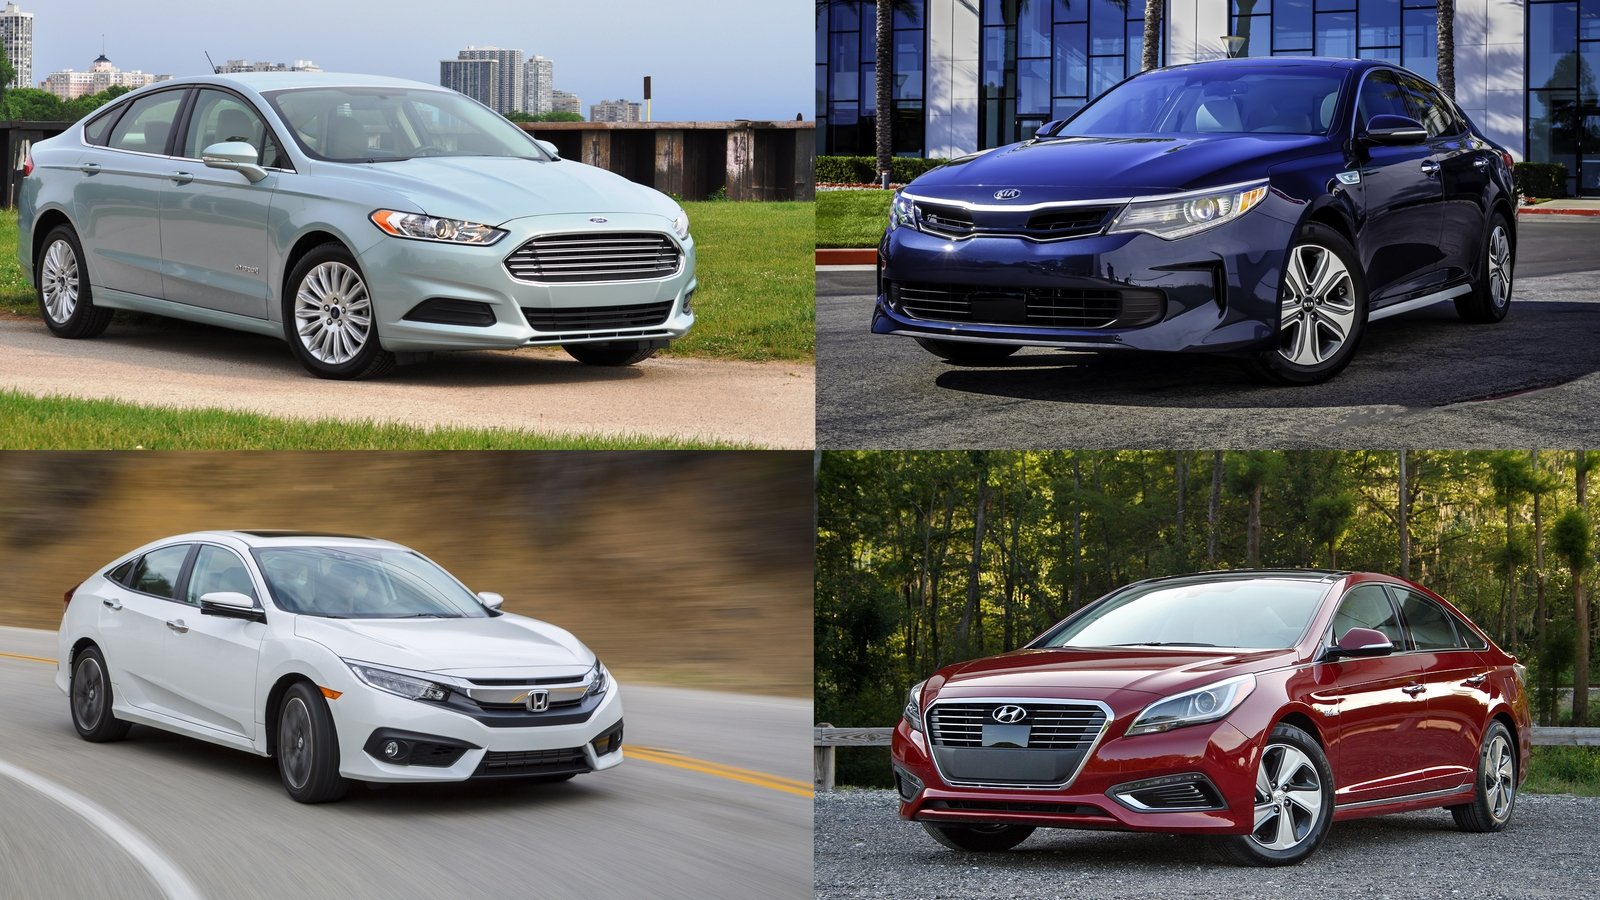 How Old Is The Best Depreciation For Buy Used Cars